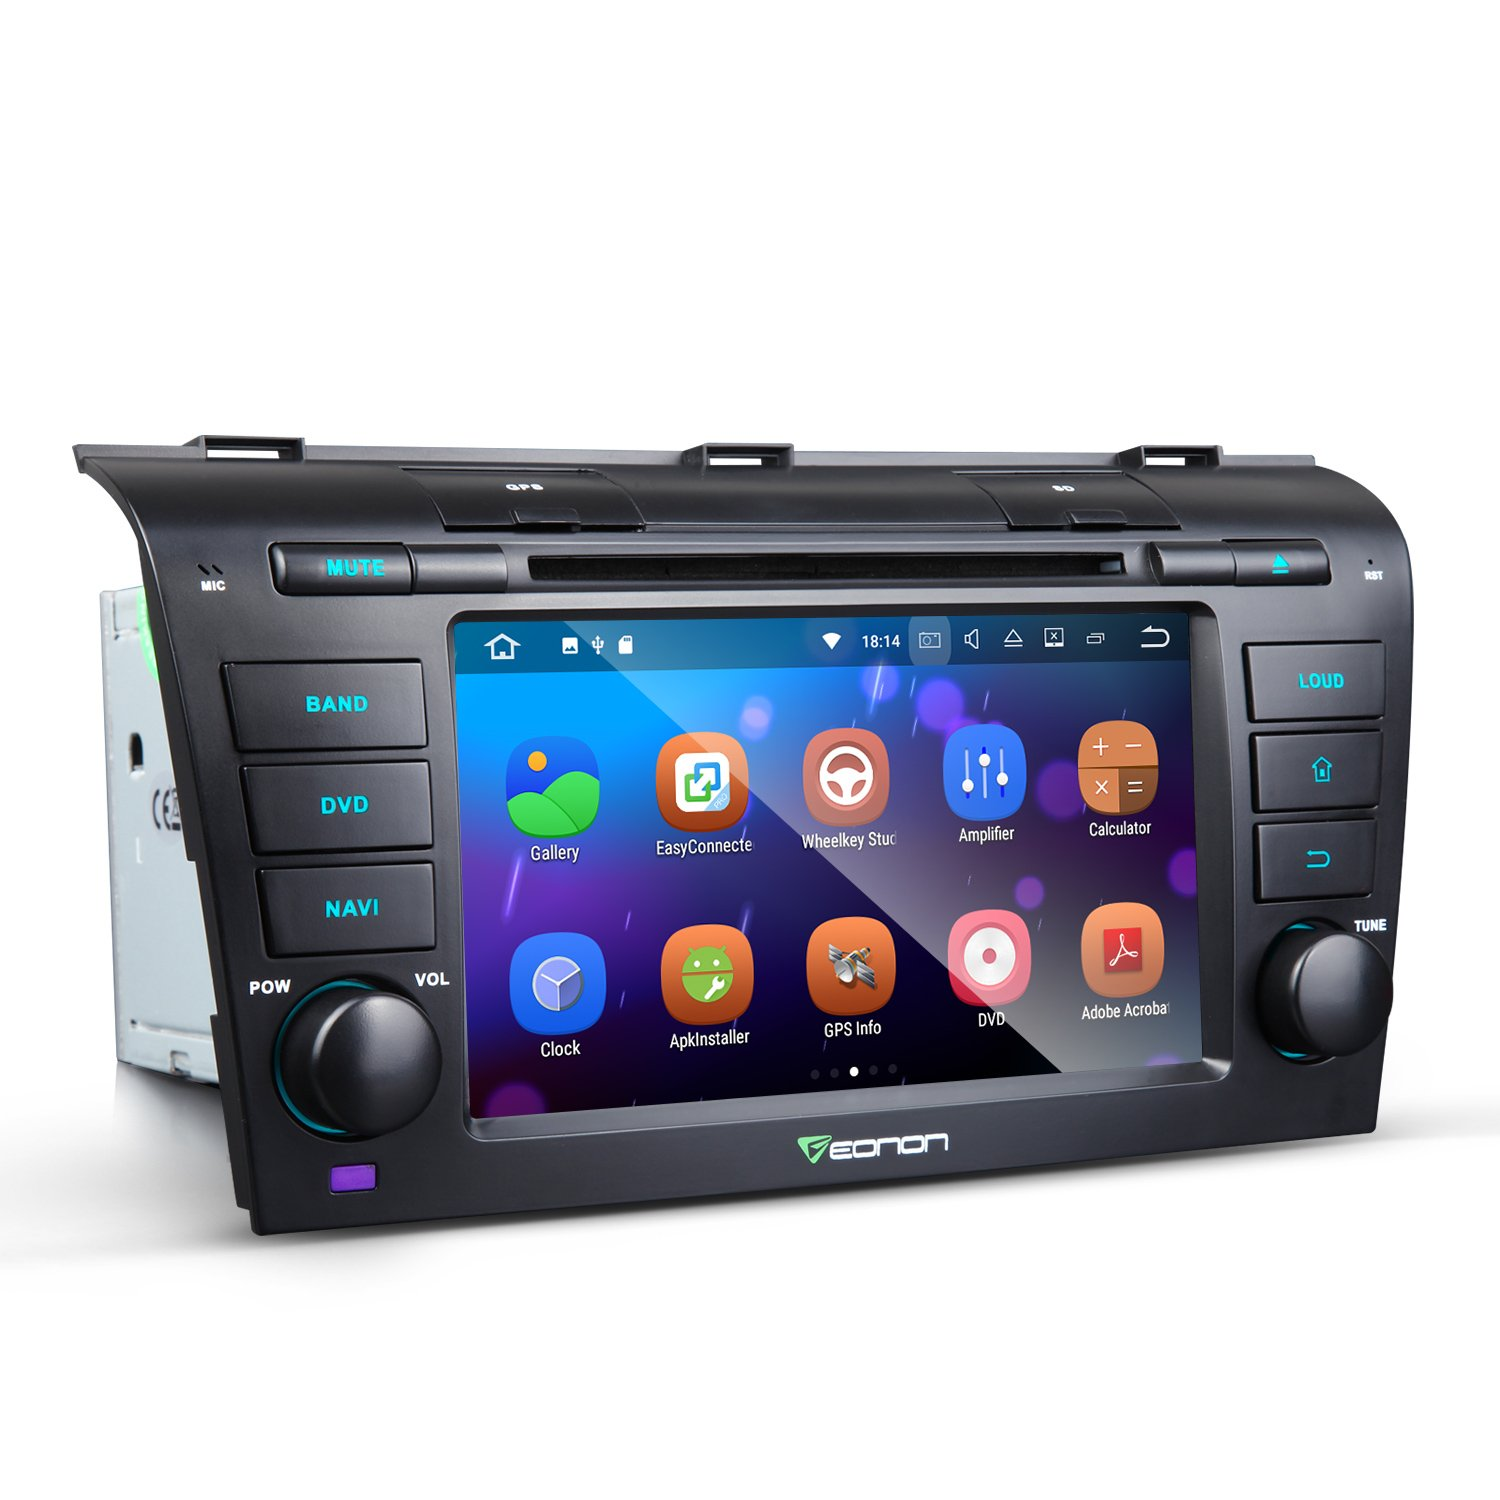 Eonon GA8151 Car Radio Stereo Audio 7 Inch Android 7.1 for Mazda Speed 3 2004,2005,2006,2007,2008 and 2009 Quad Core Car GPS Navigation In Dash Touch Screen with Bluetooth